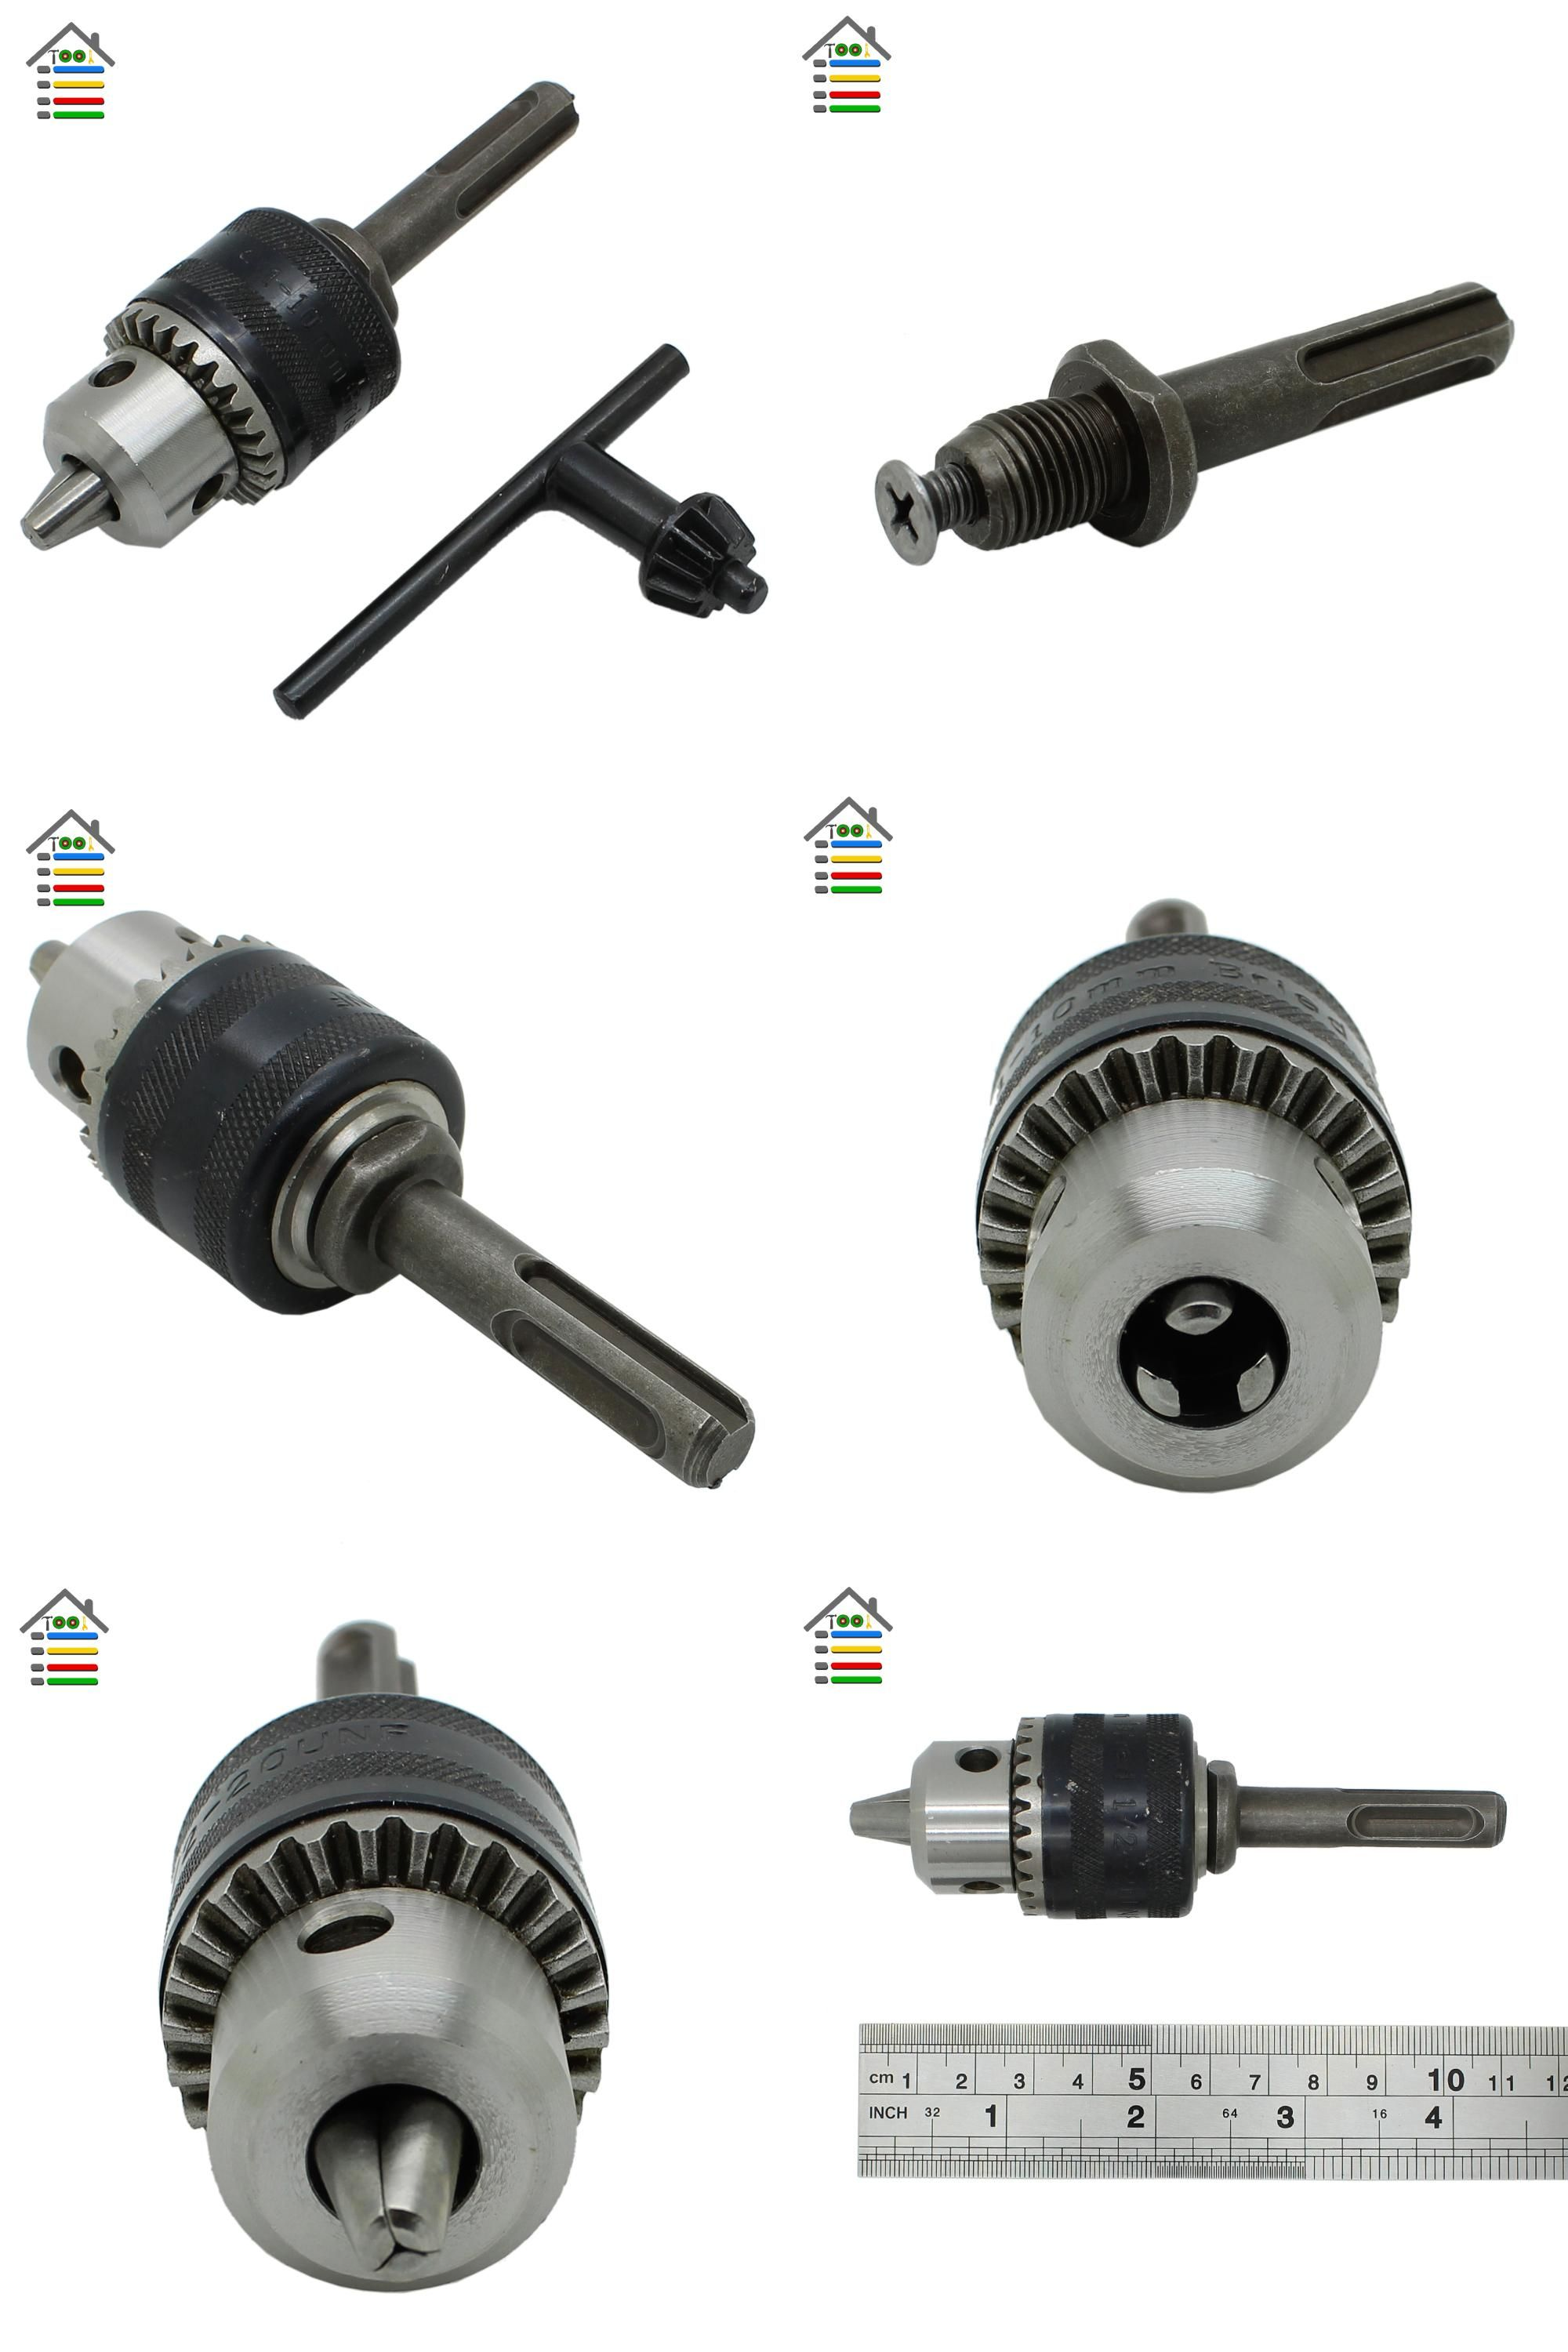 Visit To Buy New Replacement Keyless Drill Chuck 1 5 10mm 1 2 20unf Thread With Key And Sds Plus Adapter For Elect Electric Hammer Drill Chucks Hammer Drill